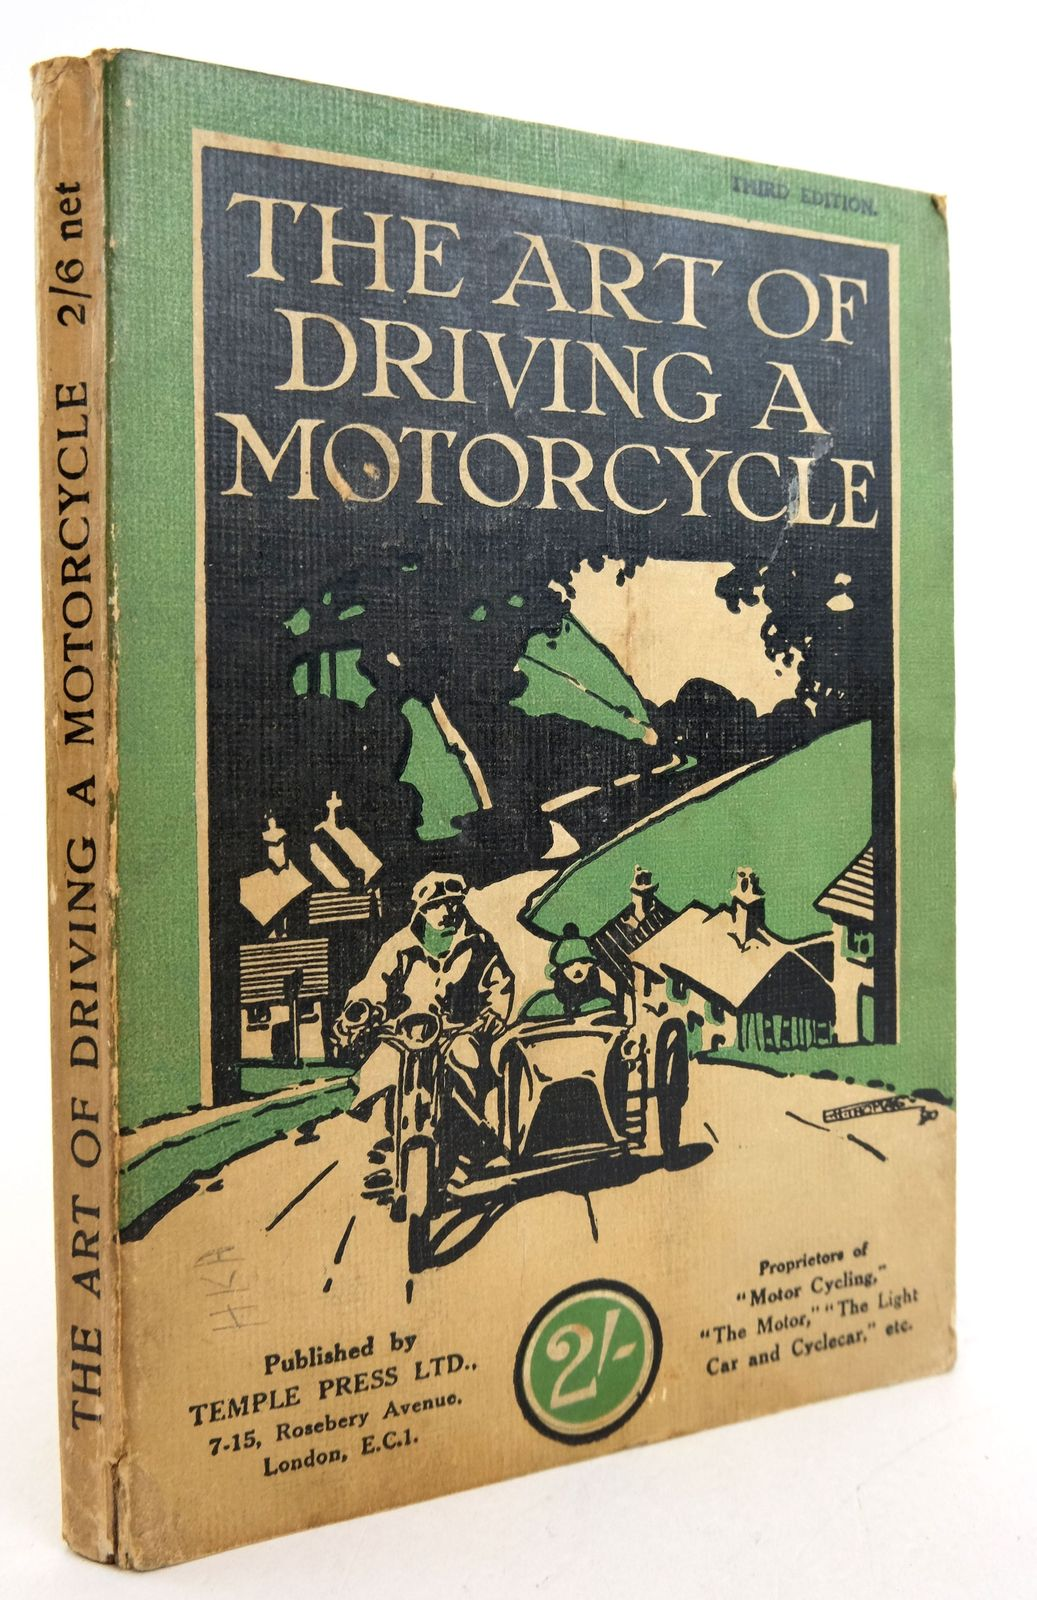 Photo of THE ART OF DRIVING A MOTORCYCLE published by Temple Press Limited (STOCK CODE: 1819444)  for sale by Stella & Rose's Books